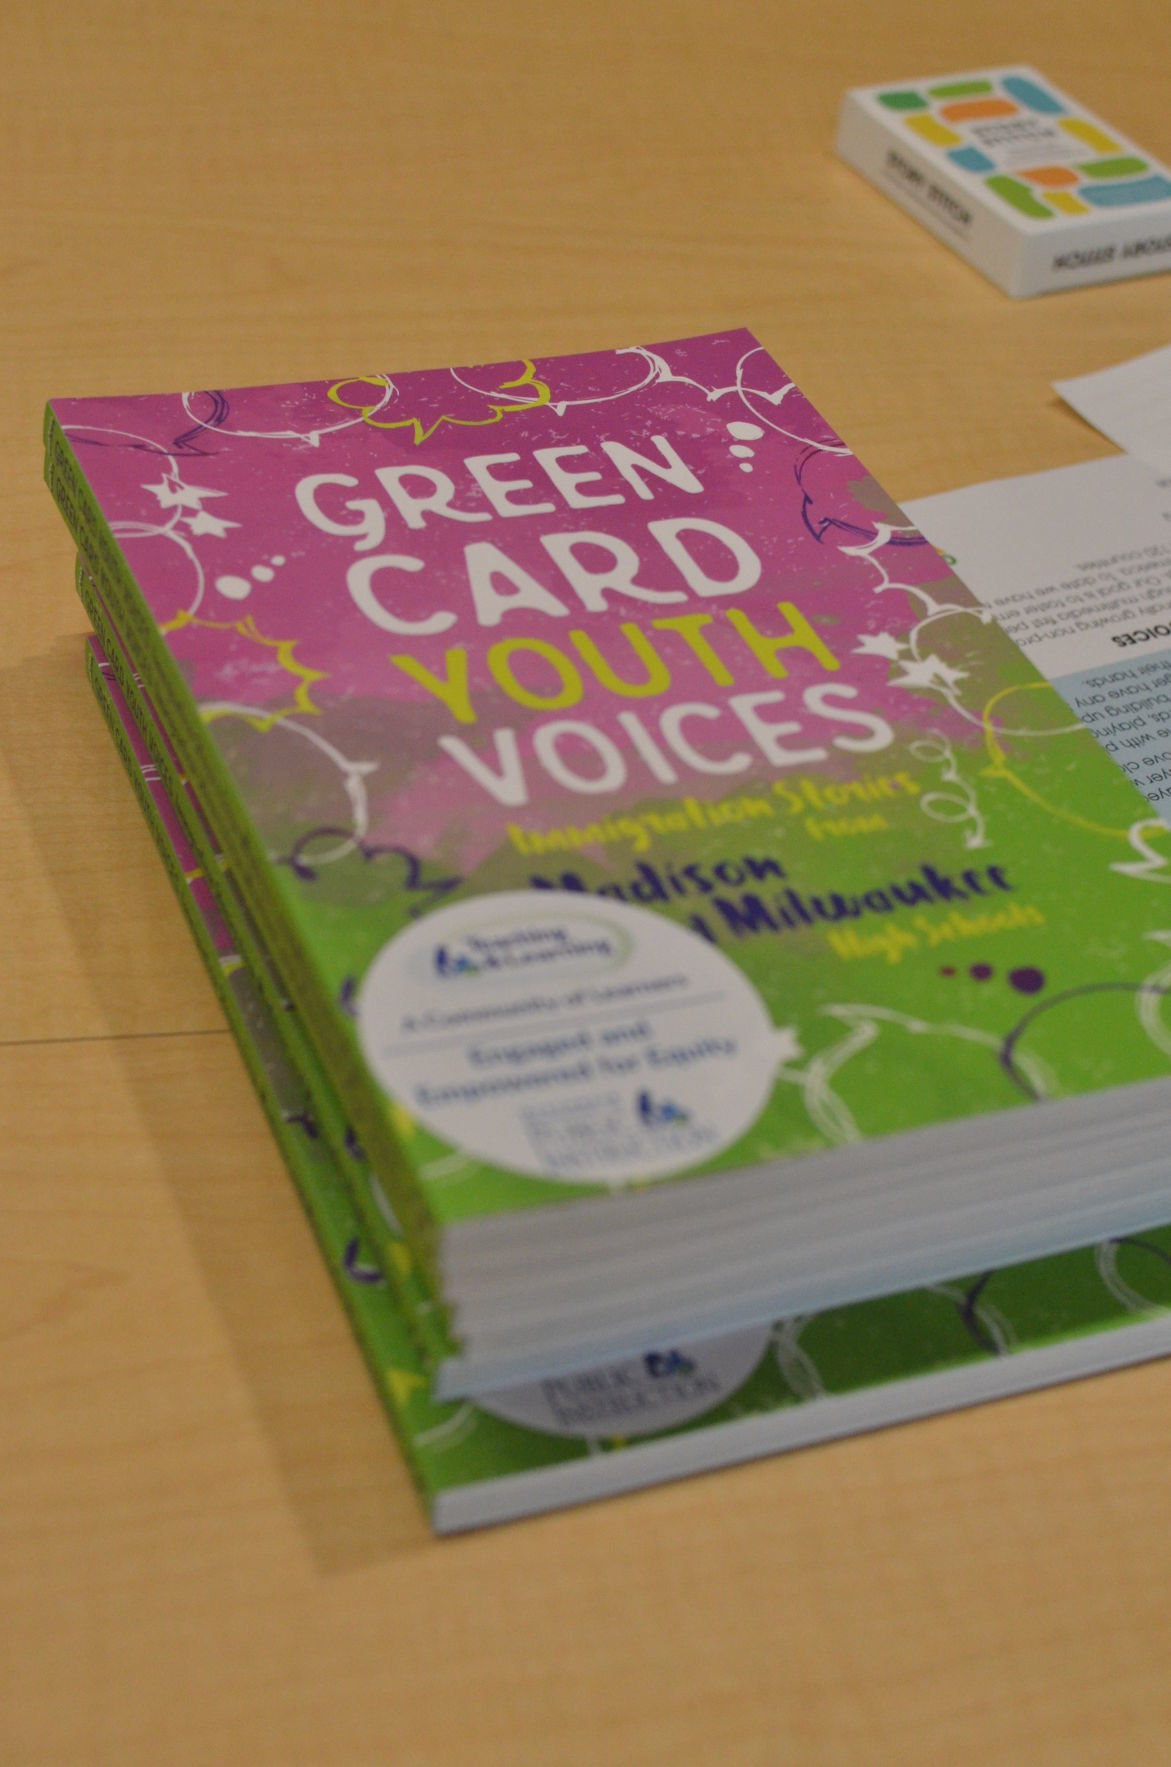 Green Card Youth Voices Book